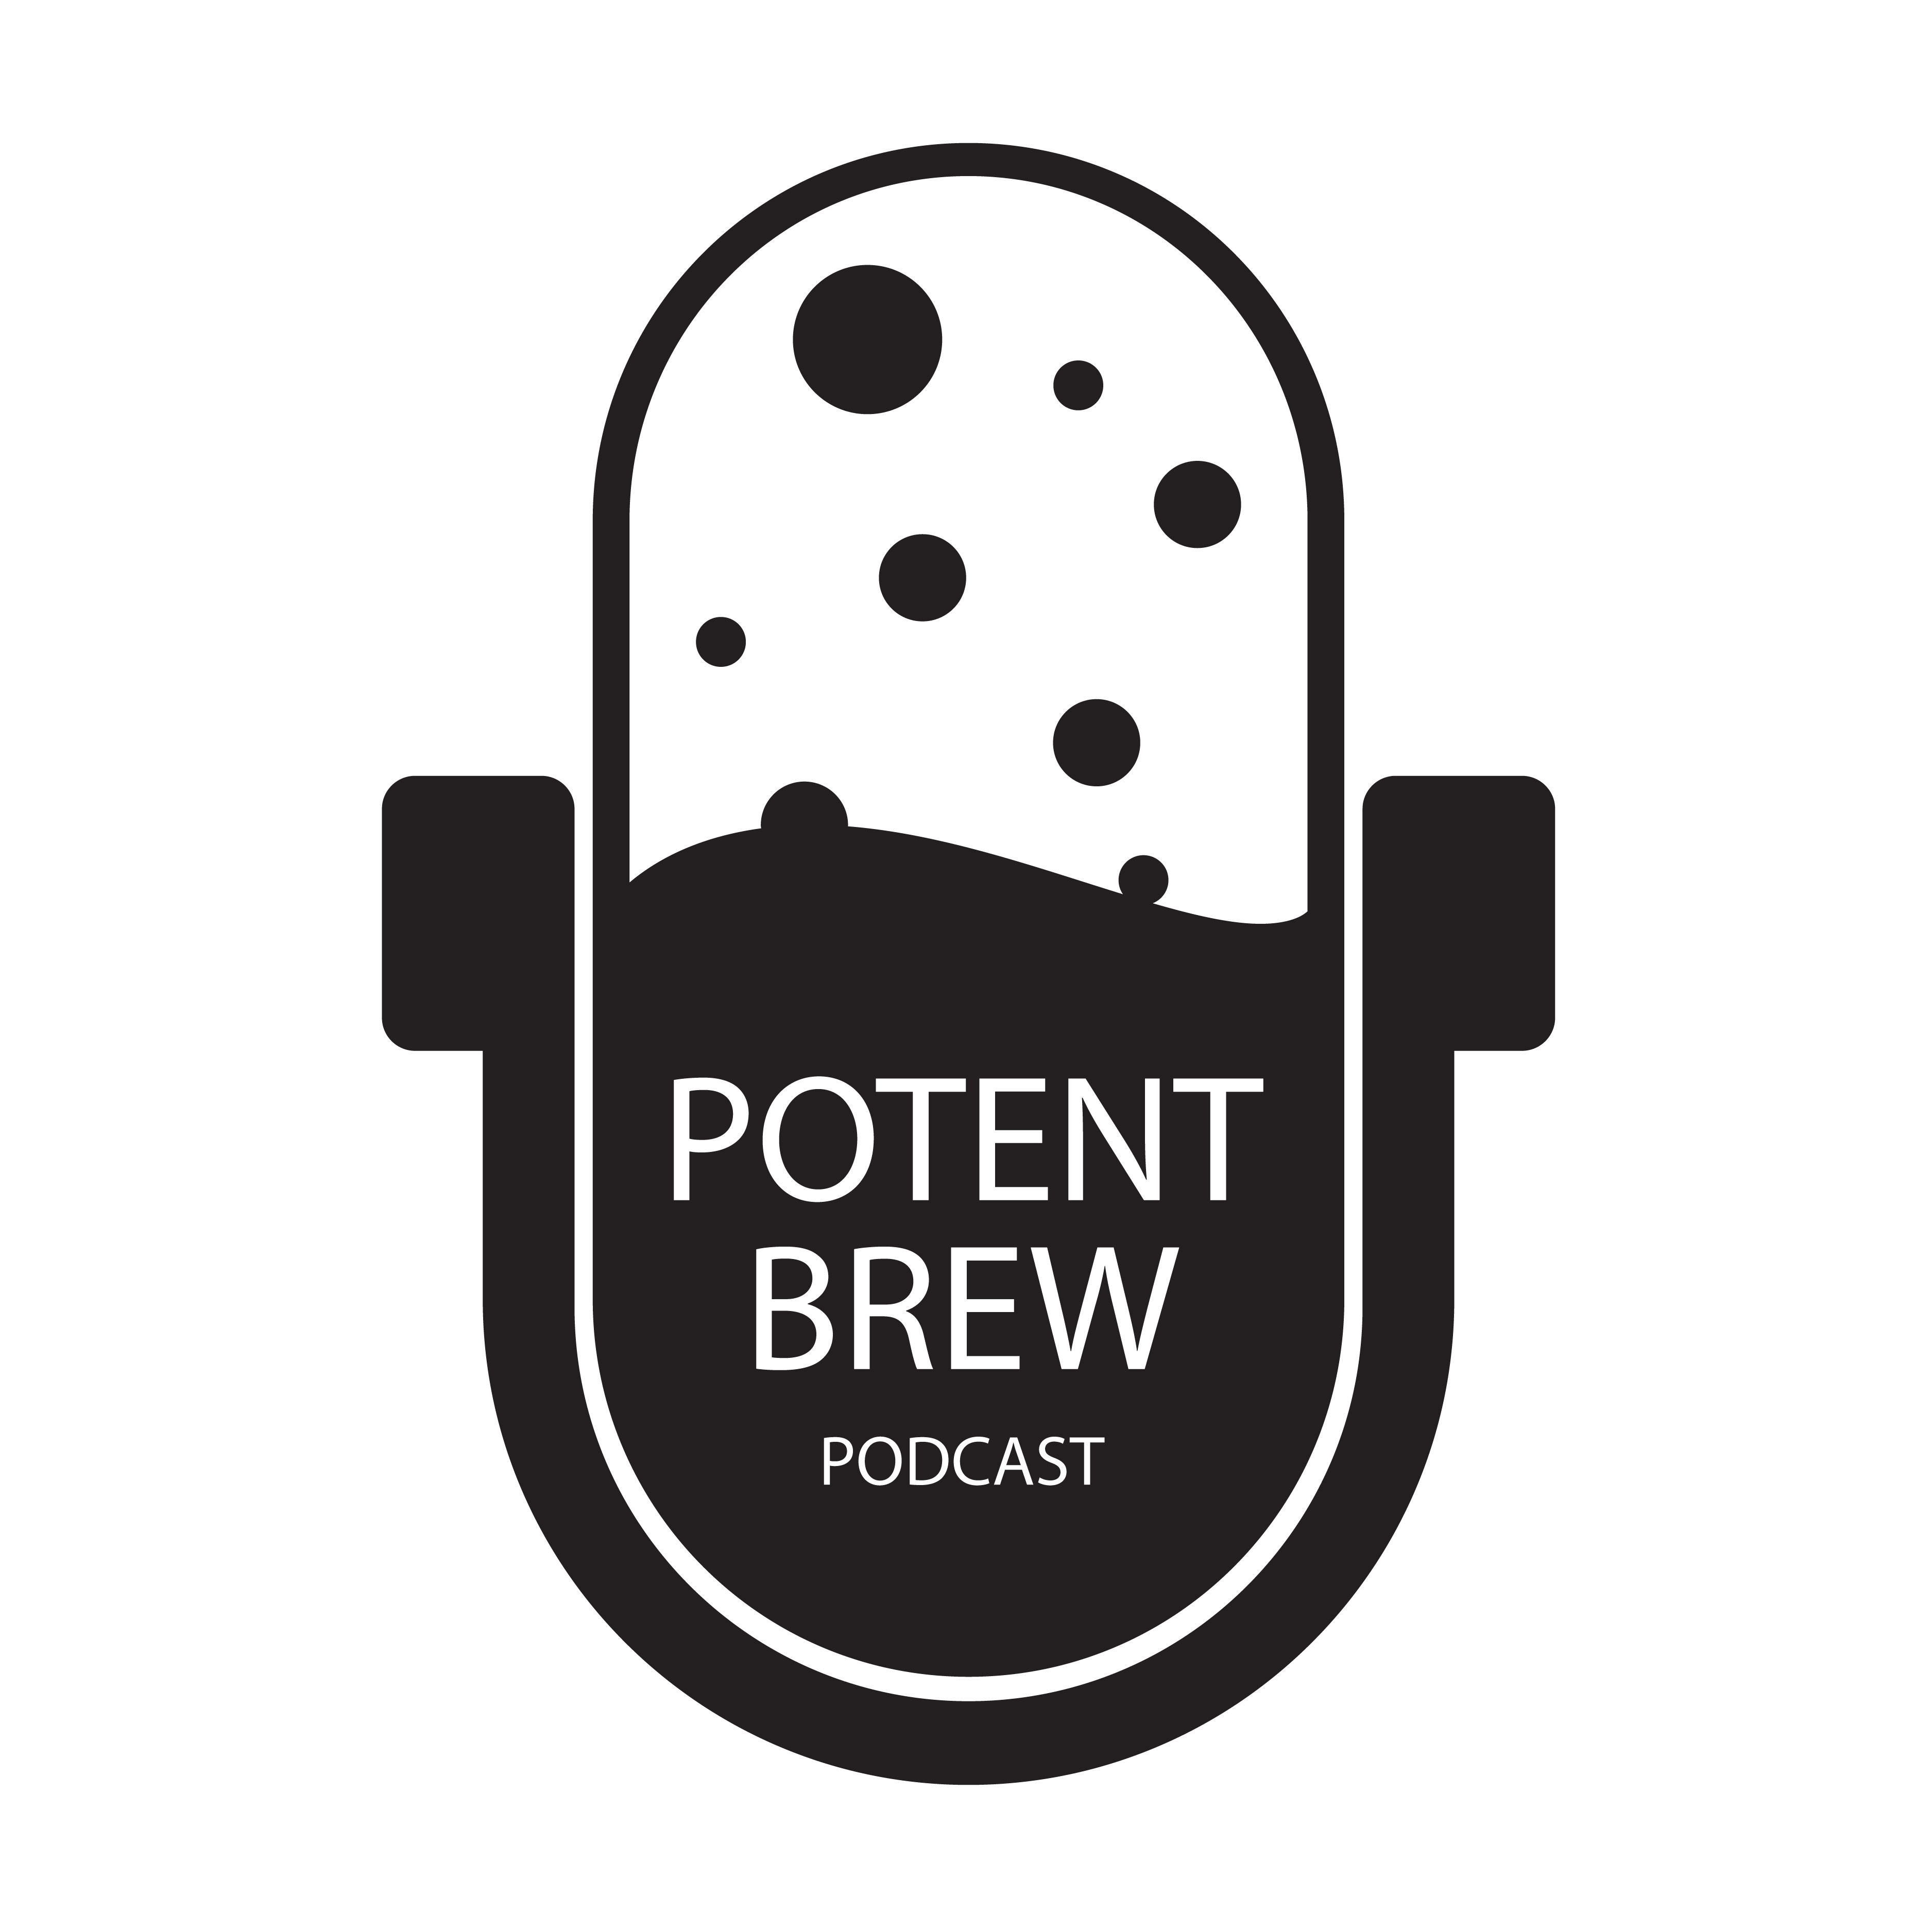 Potent Brew Podcast